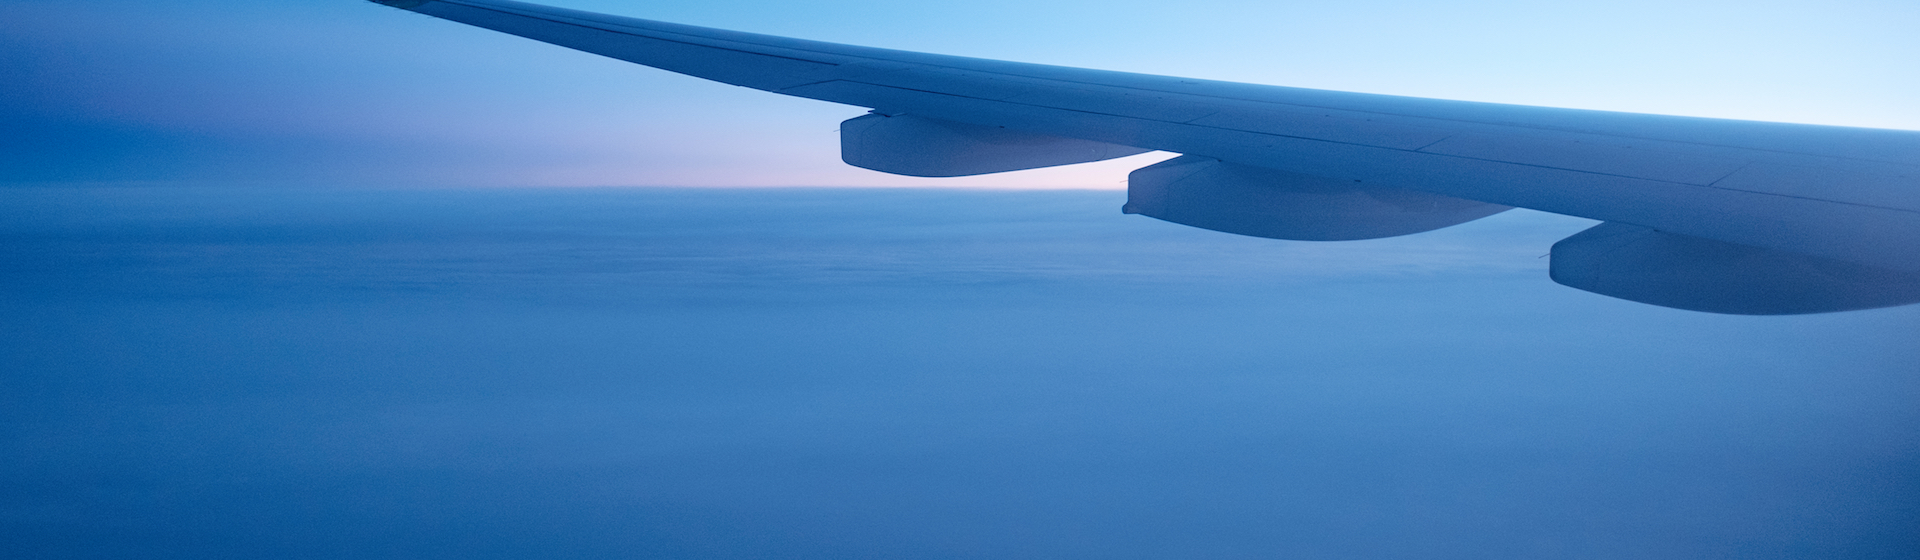 Airplane wing in the sky